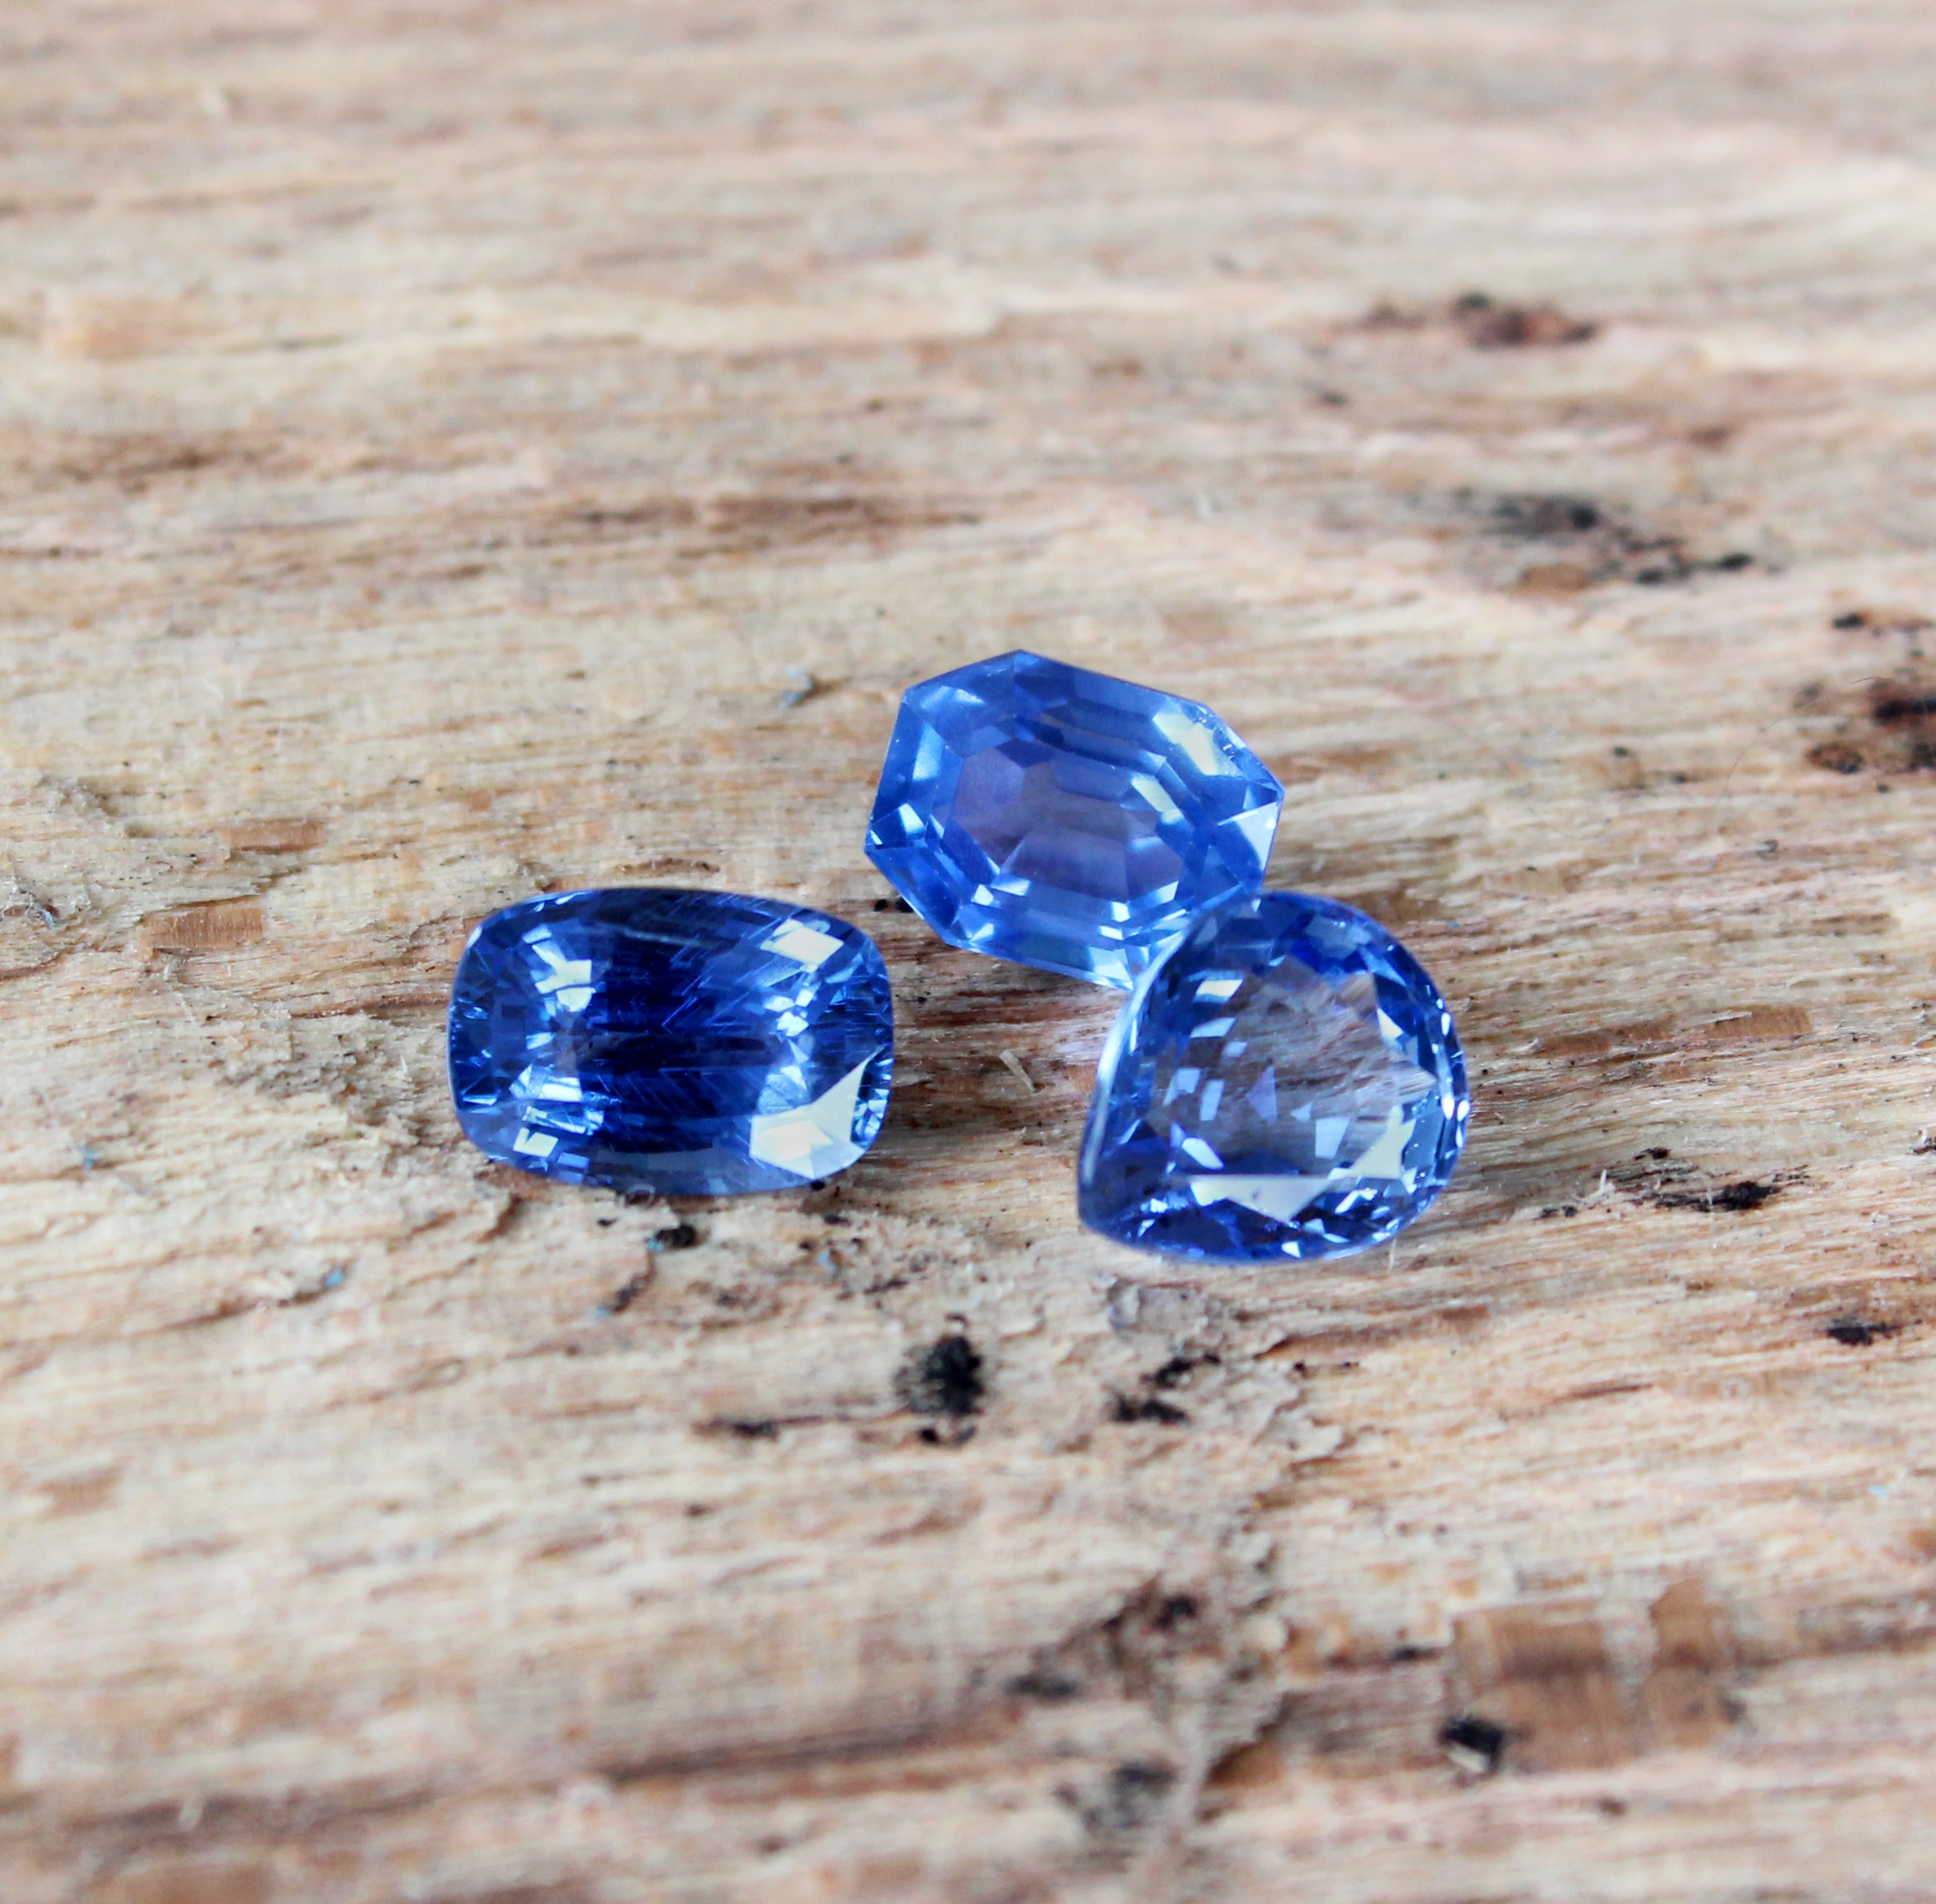 sumptuous sapphire - september's birthstone